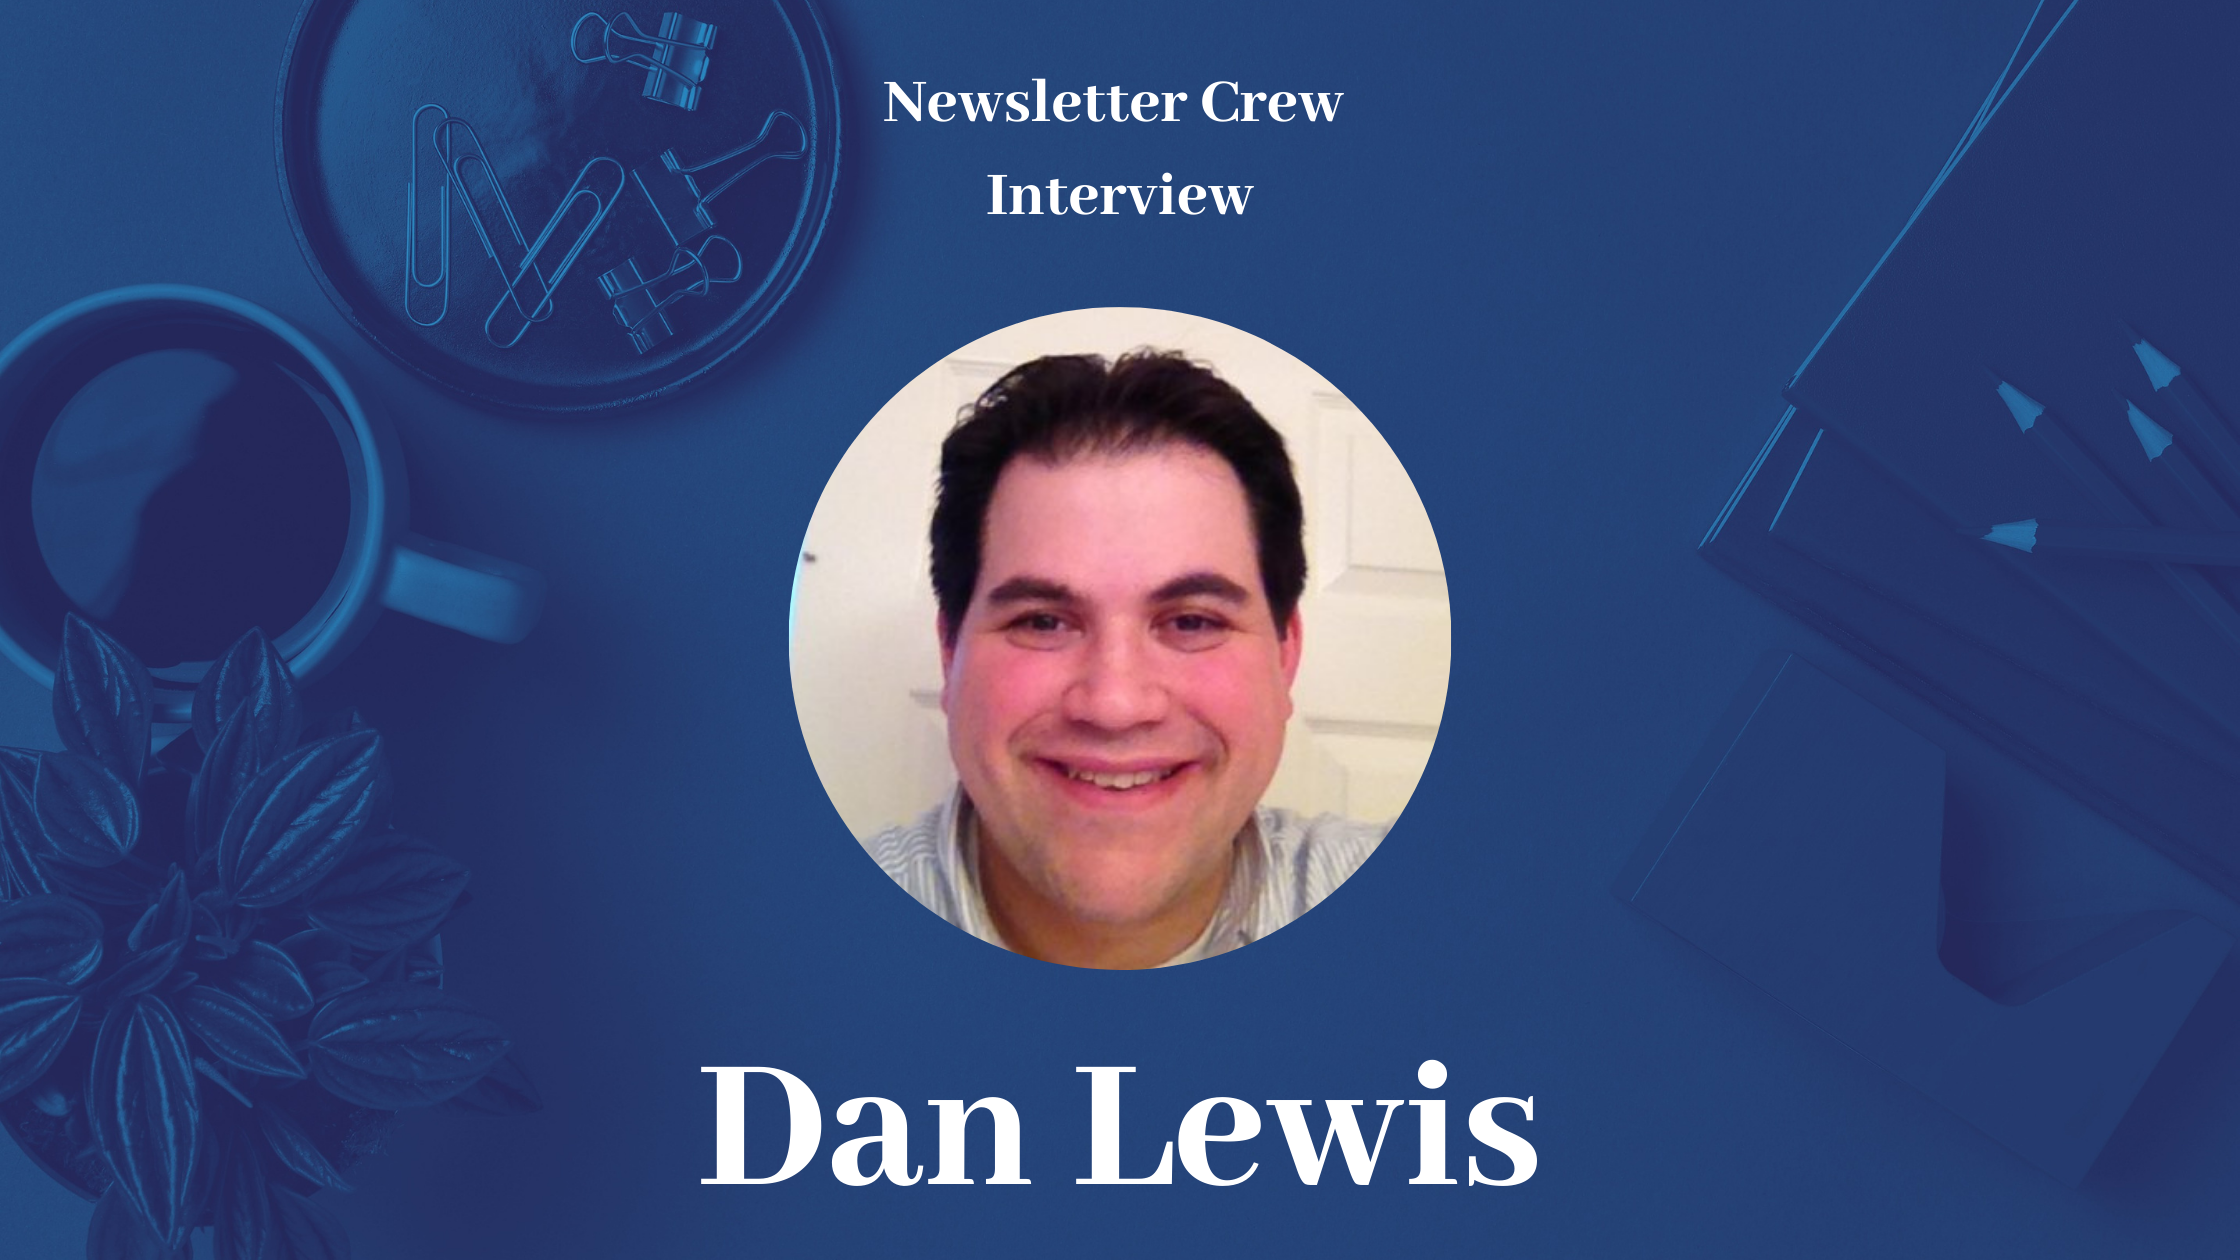 Daily trivia and 100,000 subscribers with Dan Lewis